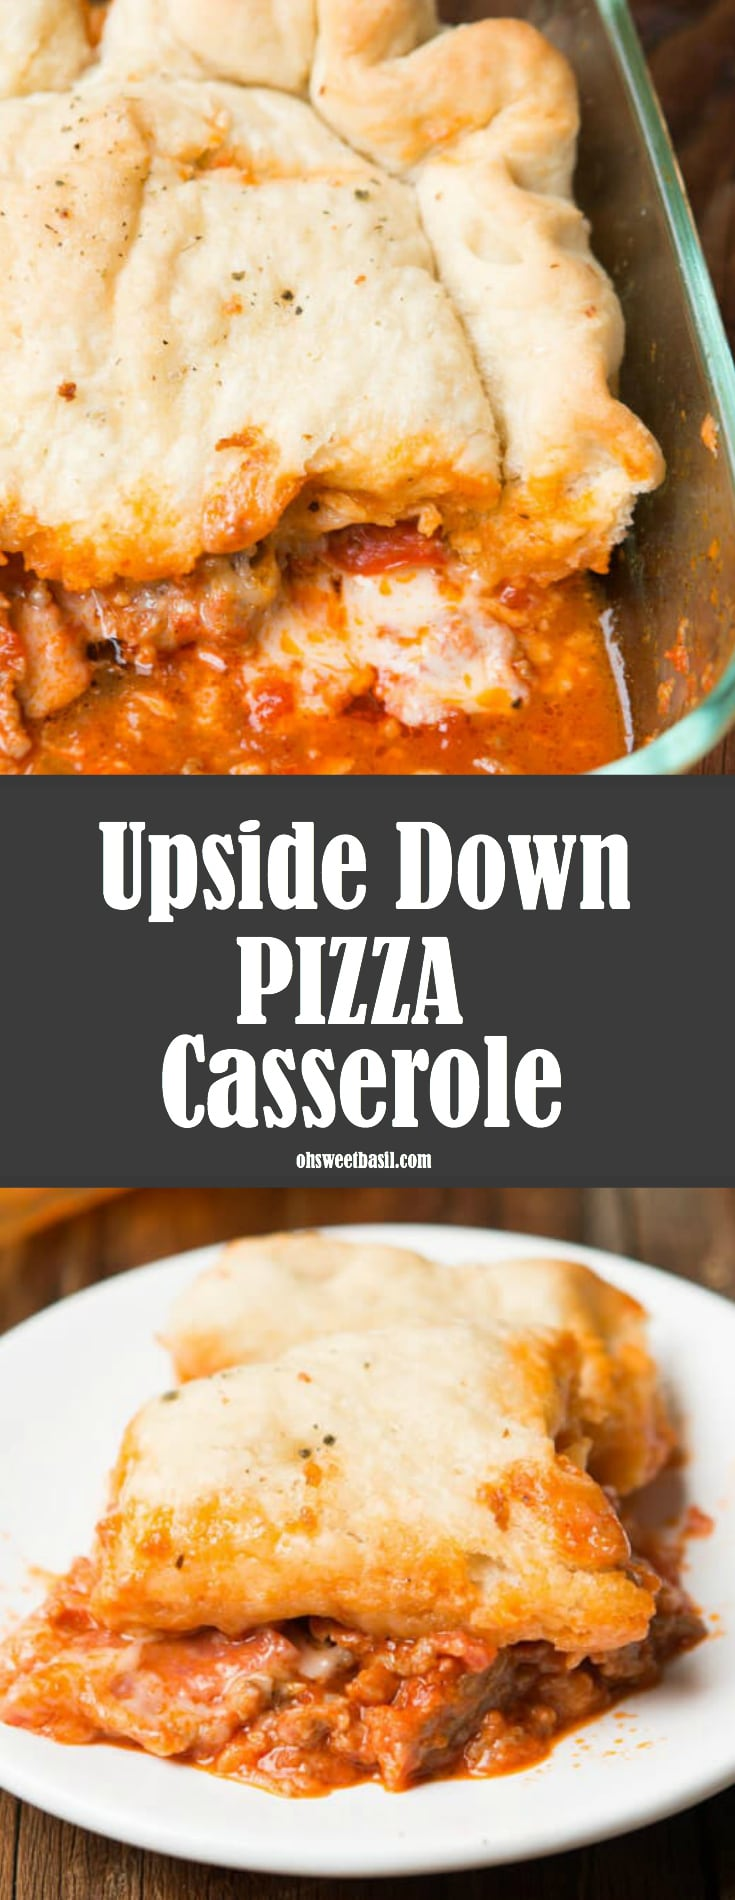 Upside Down Pizza Casserole with pepperoni, homemade dough, sauce and melted cheese